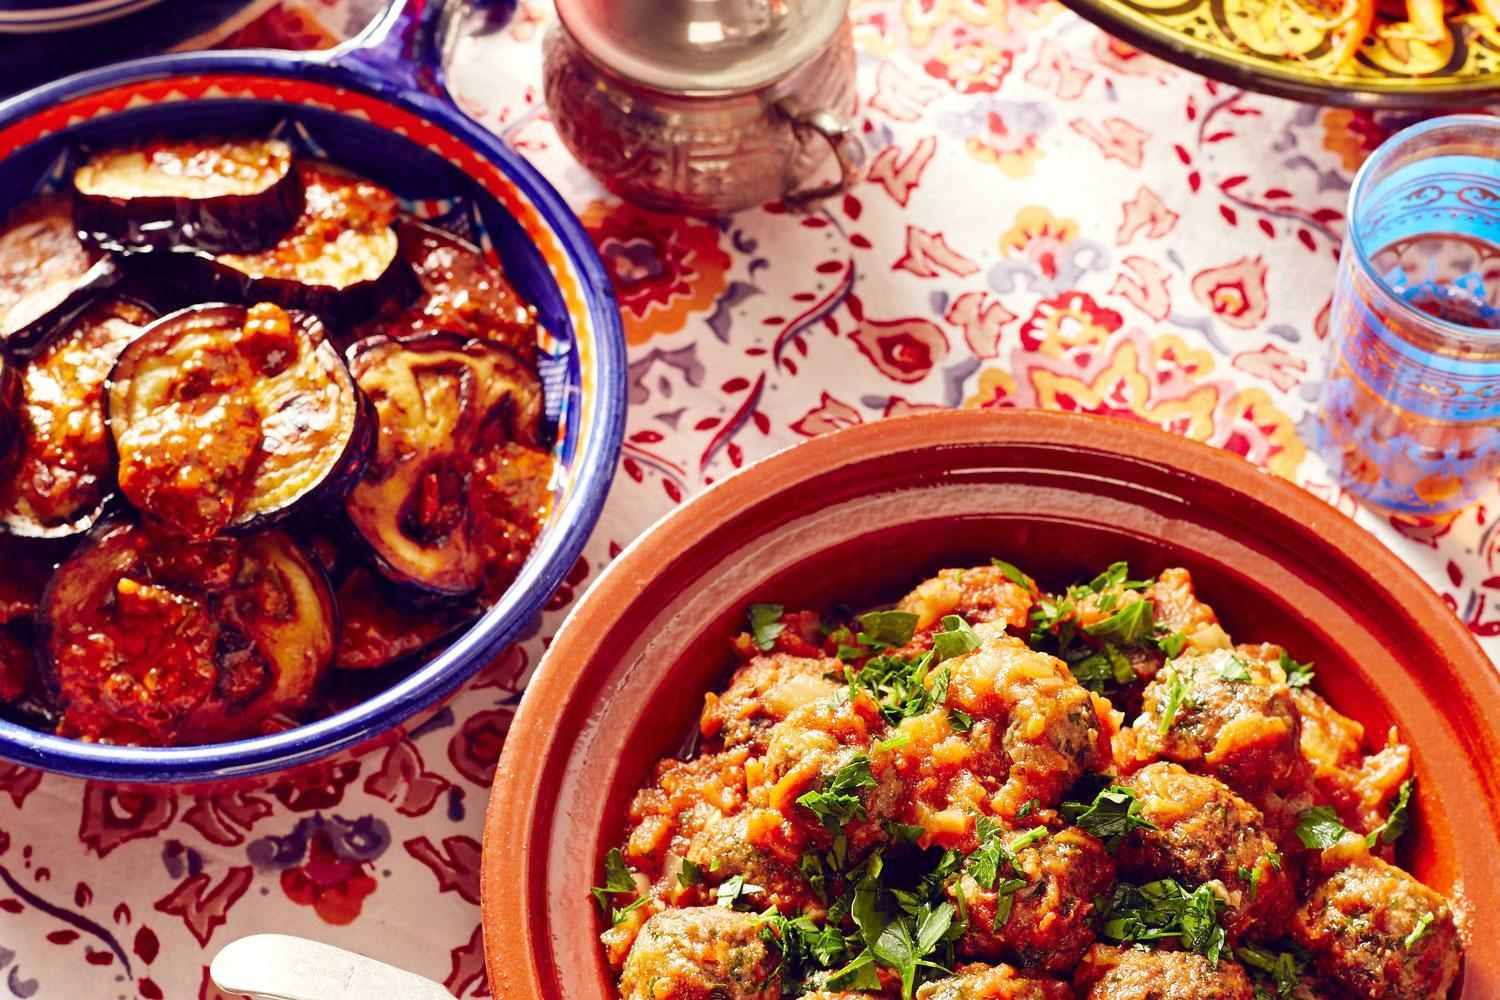 Morocco foodie tours in Marrakech to taste local Moroccan dishes & Cuisine